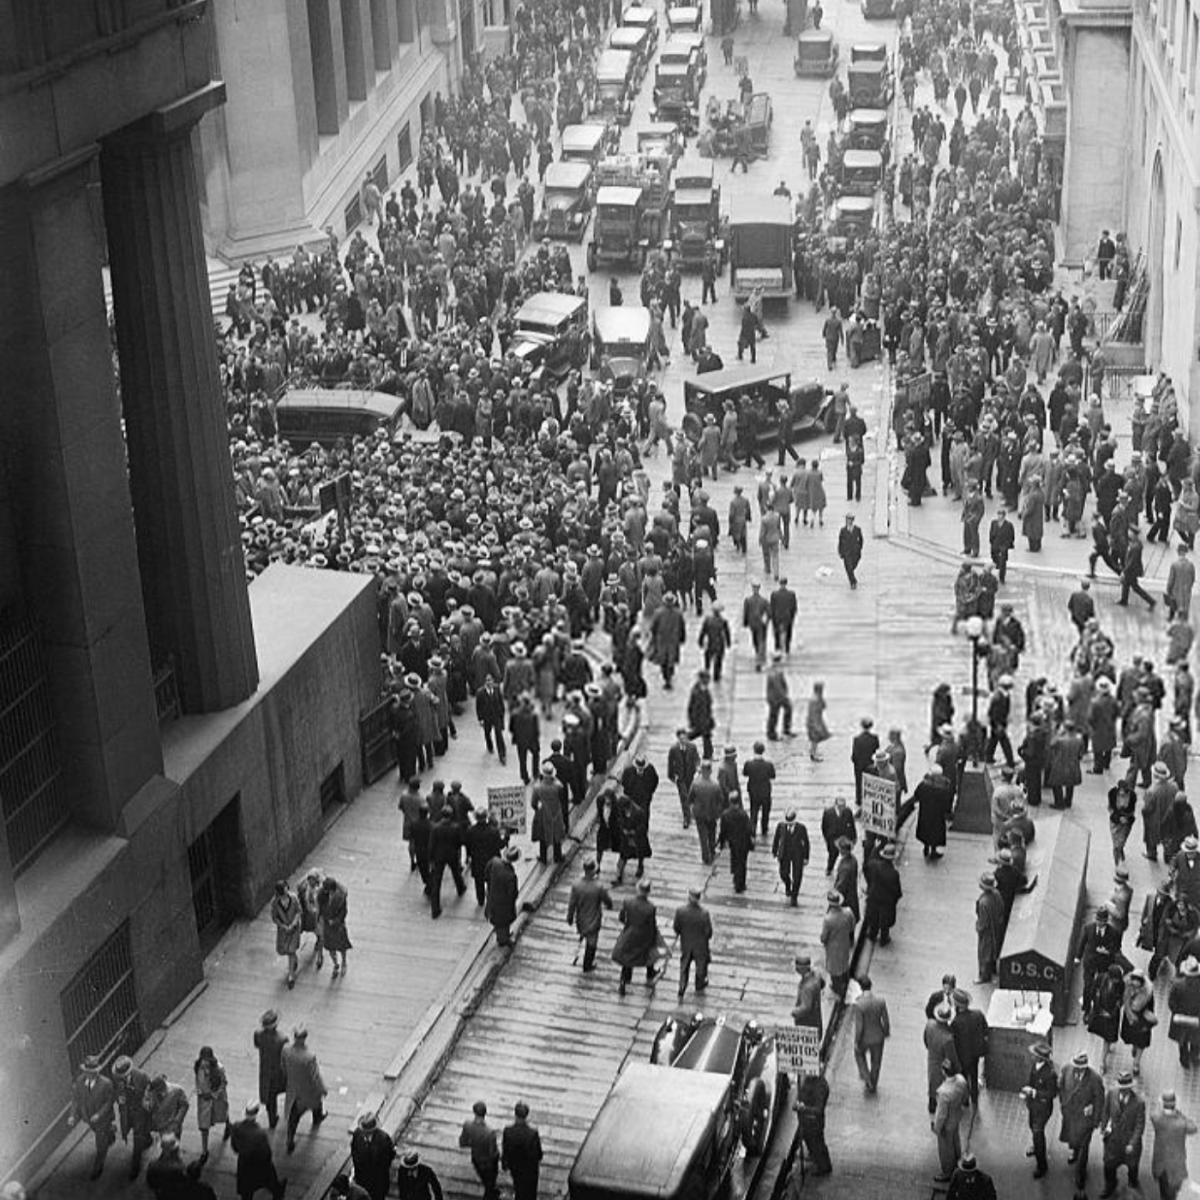 In this photo, a crowd of concerned citizens gathers outside of the NYSE on October 29, 1929.